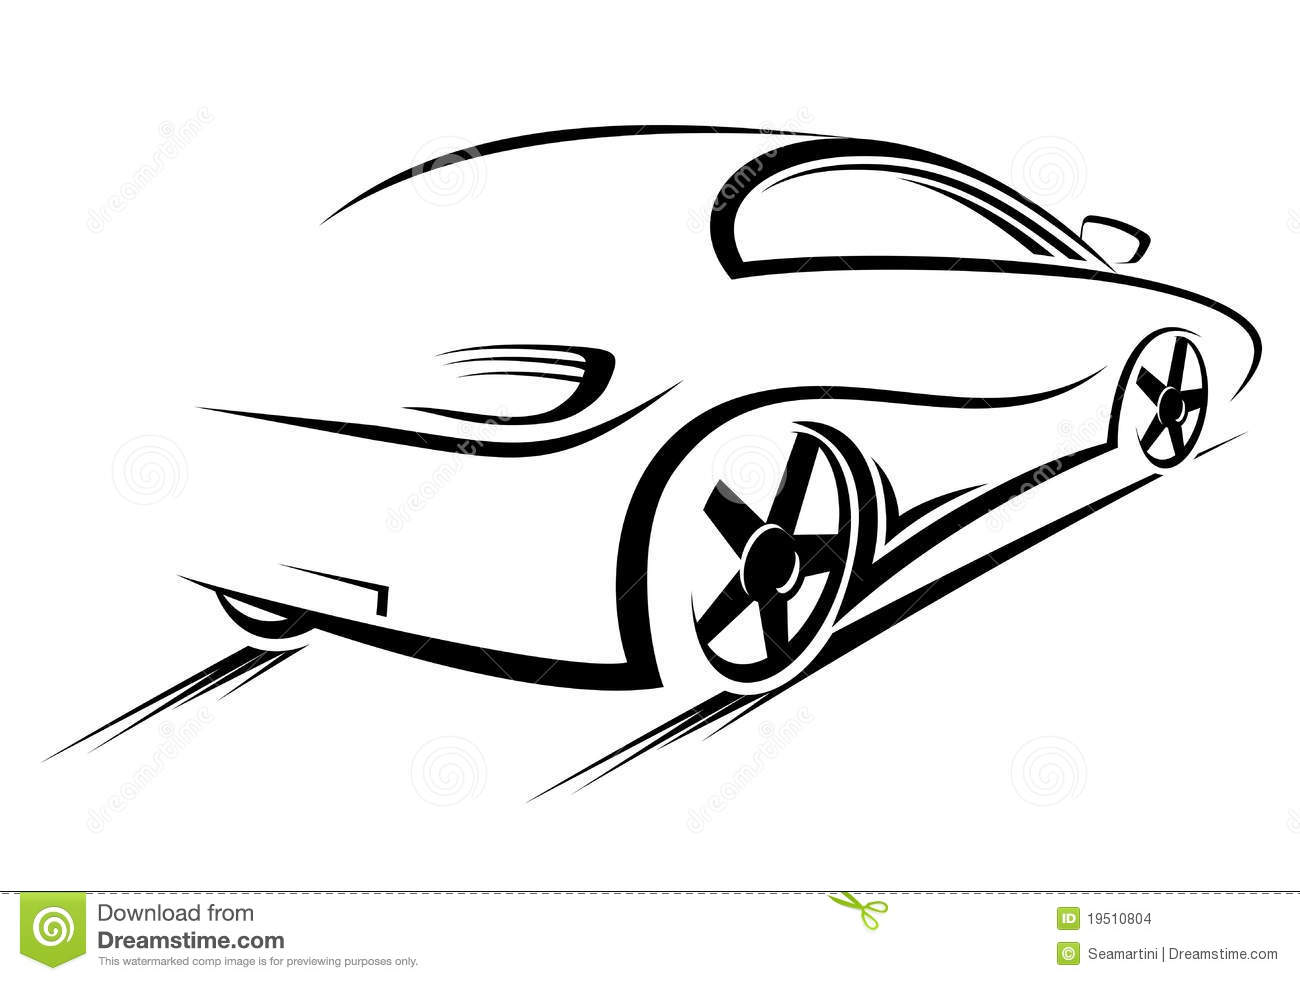 Car Silhouette Stock Vector Illustration Of Black Bumper